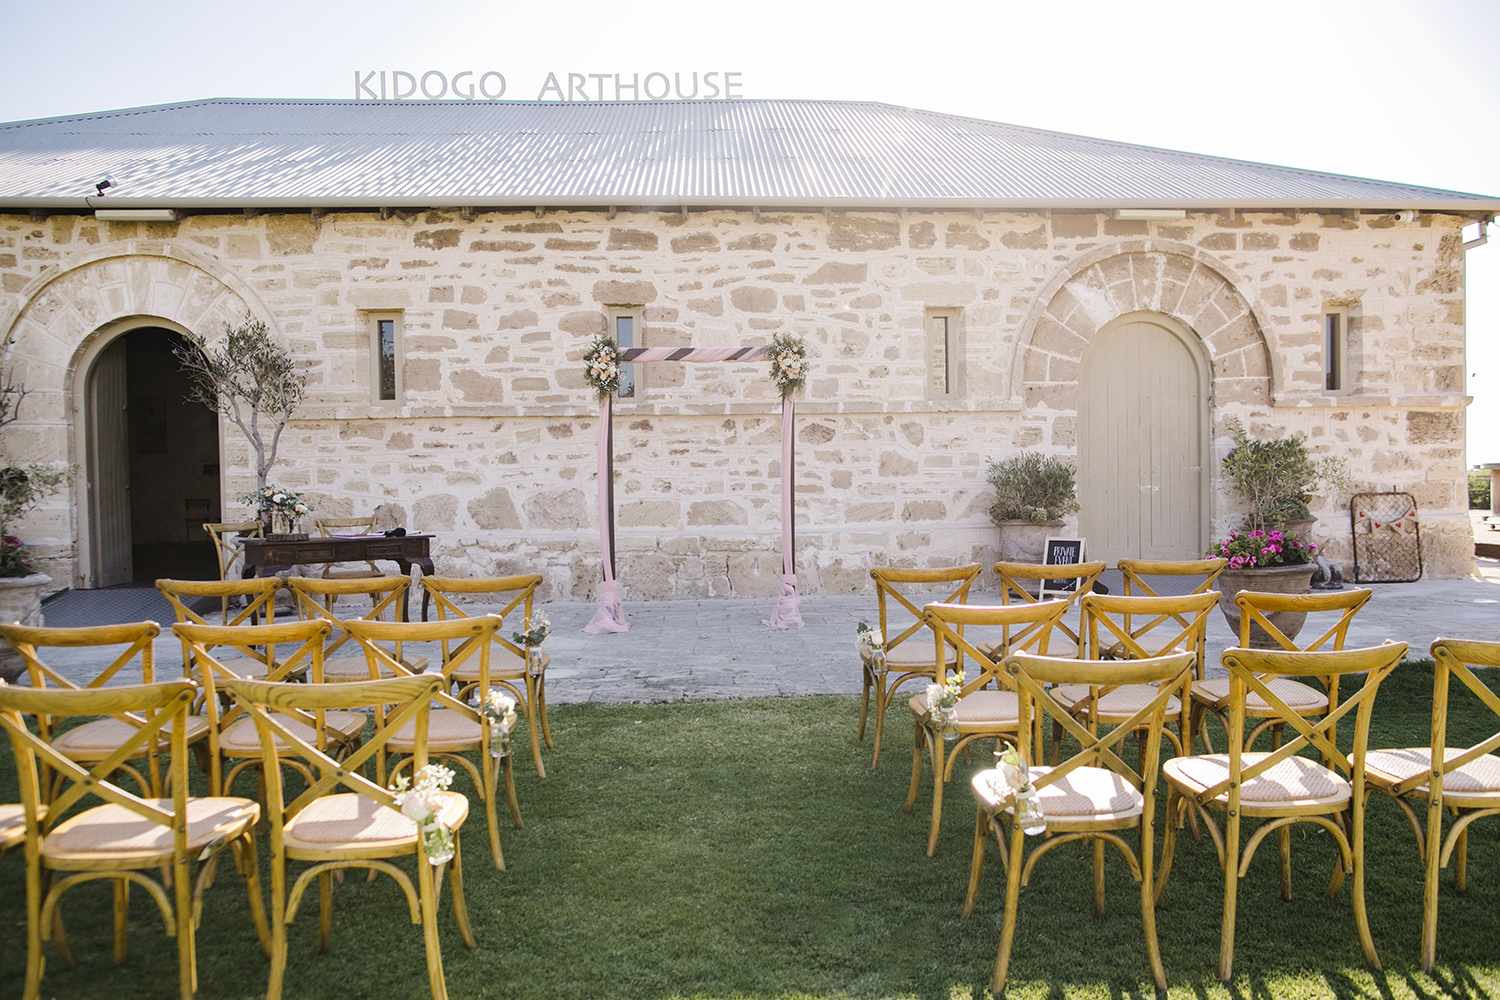 Kidogo Arthouse Pop Up Wedding